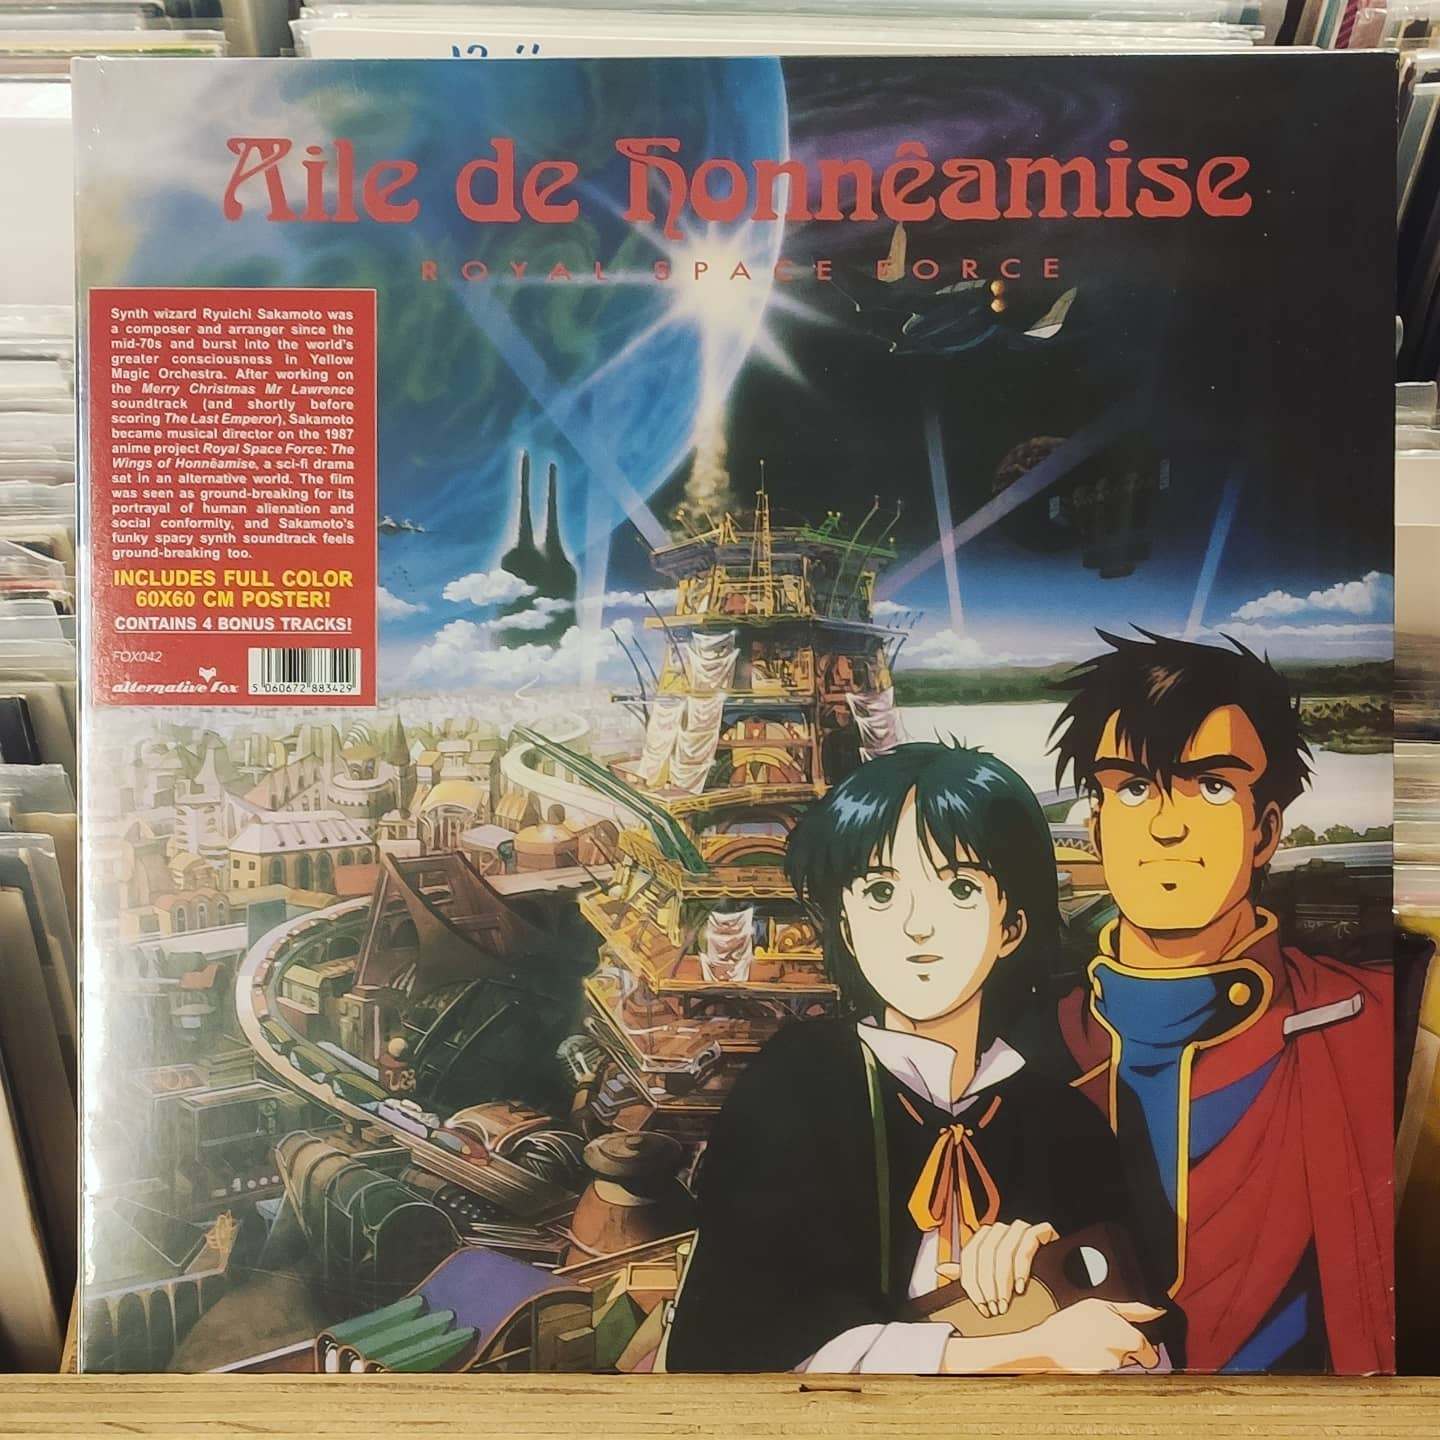 Product image Ryuichi Sakamoto ‎– Aile De Honnêamise – Royal Space Force – LP Nieuw